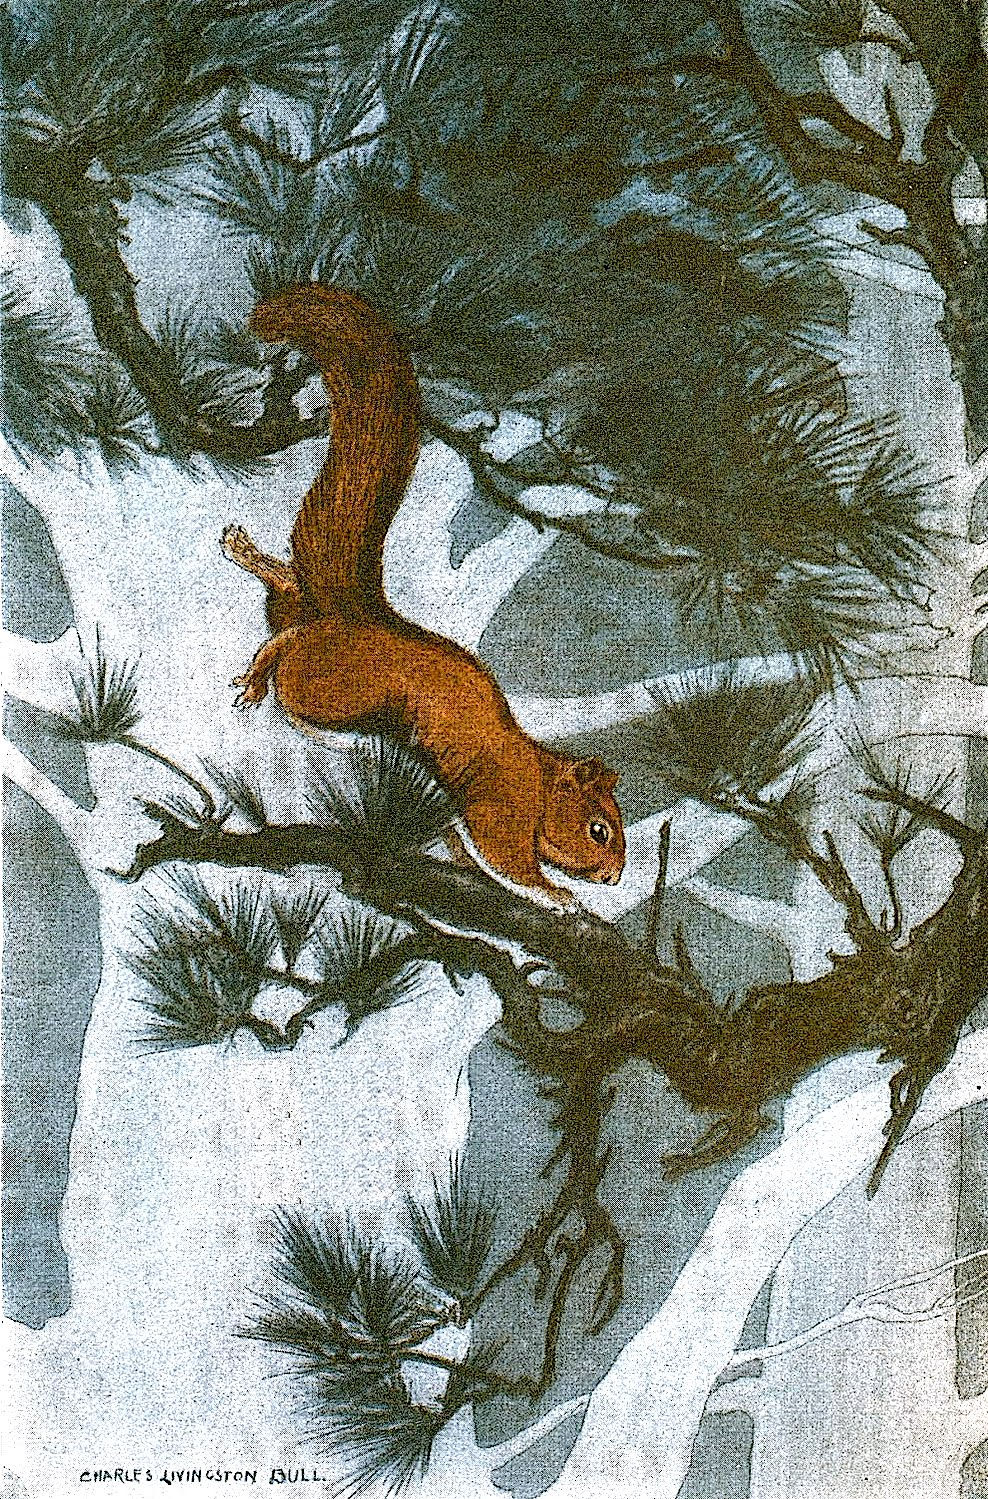 a Charles Livingston Bull illustration of a leaping squirrel in winter trees